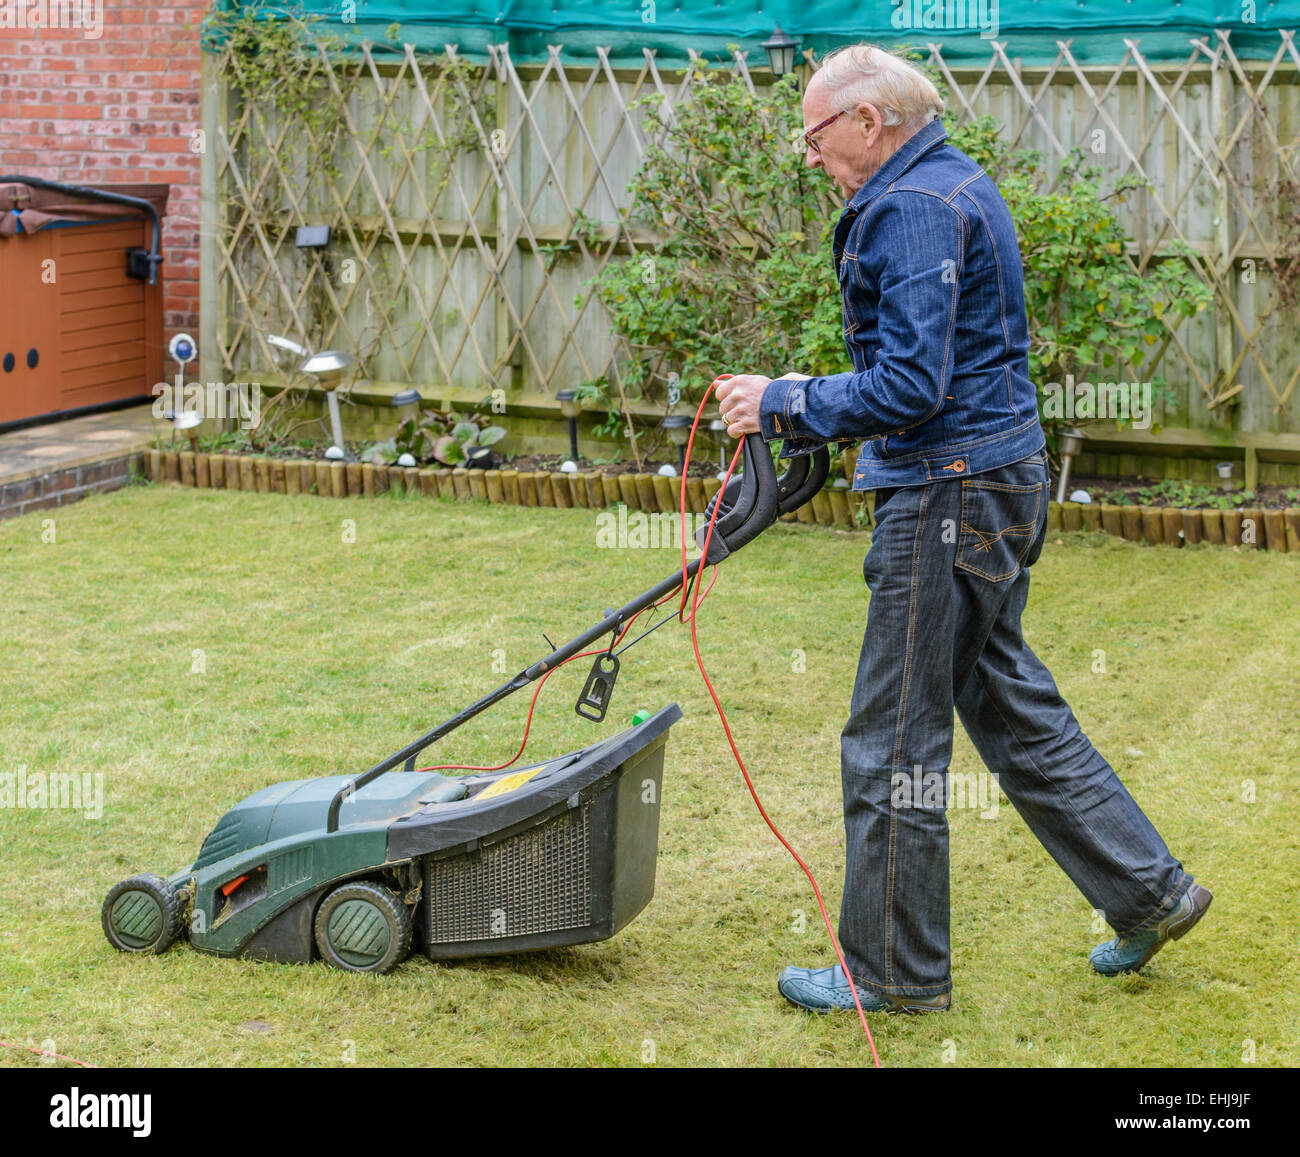 Old man mowing the lawn in a garden. Stock Photo